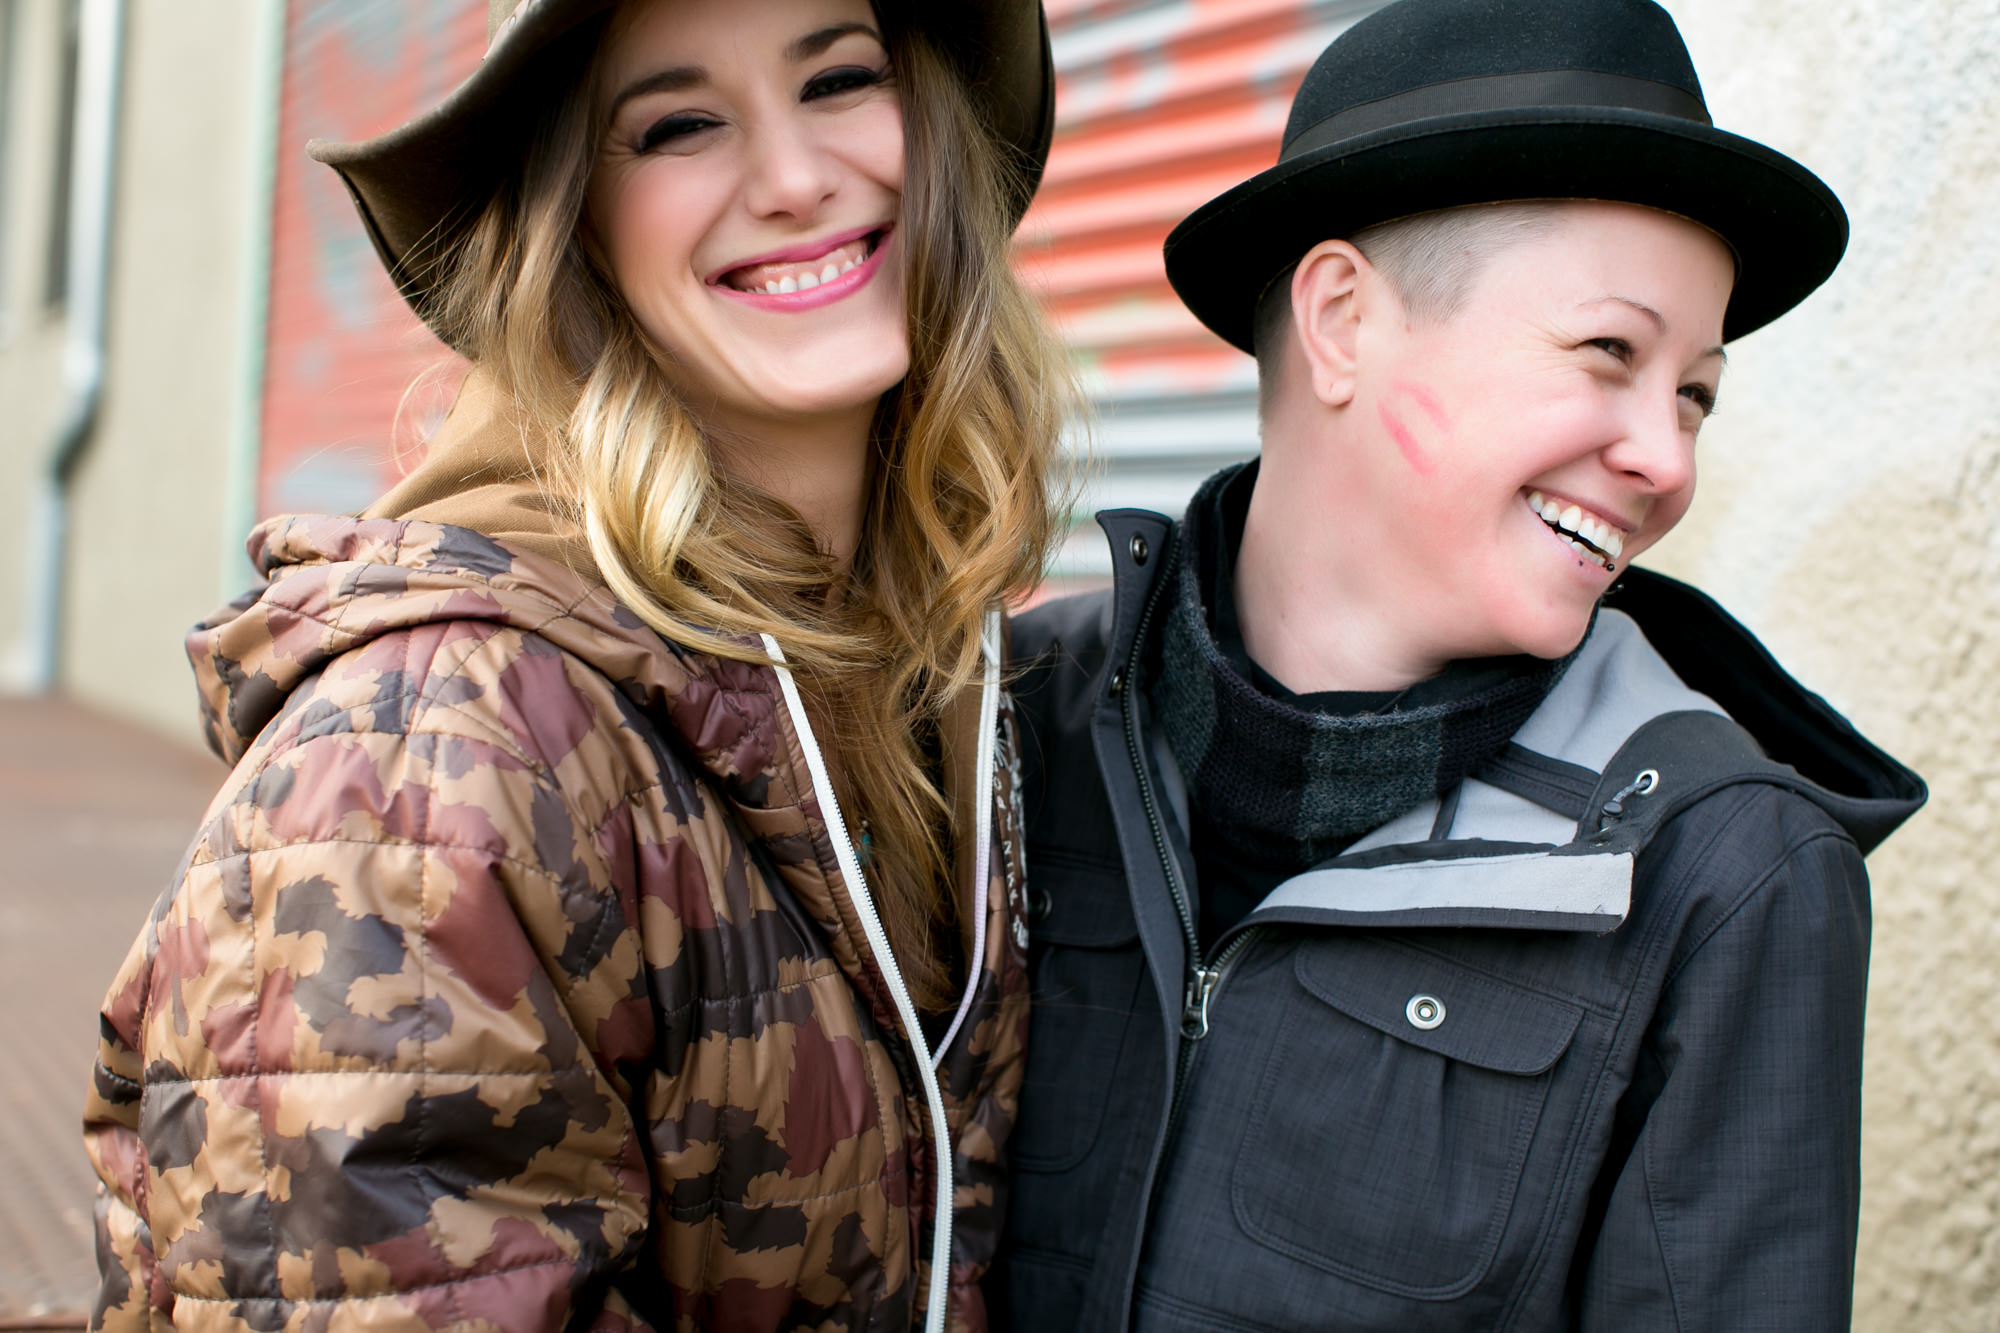 Happy portrait of two women with one who has a kiss print on her cheek - photo by Jessica Hill Photography